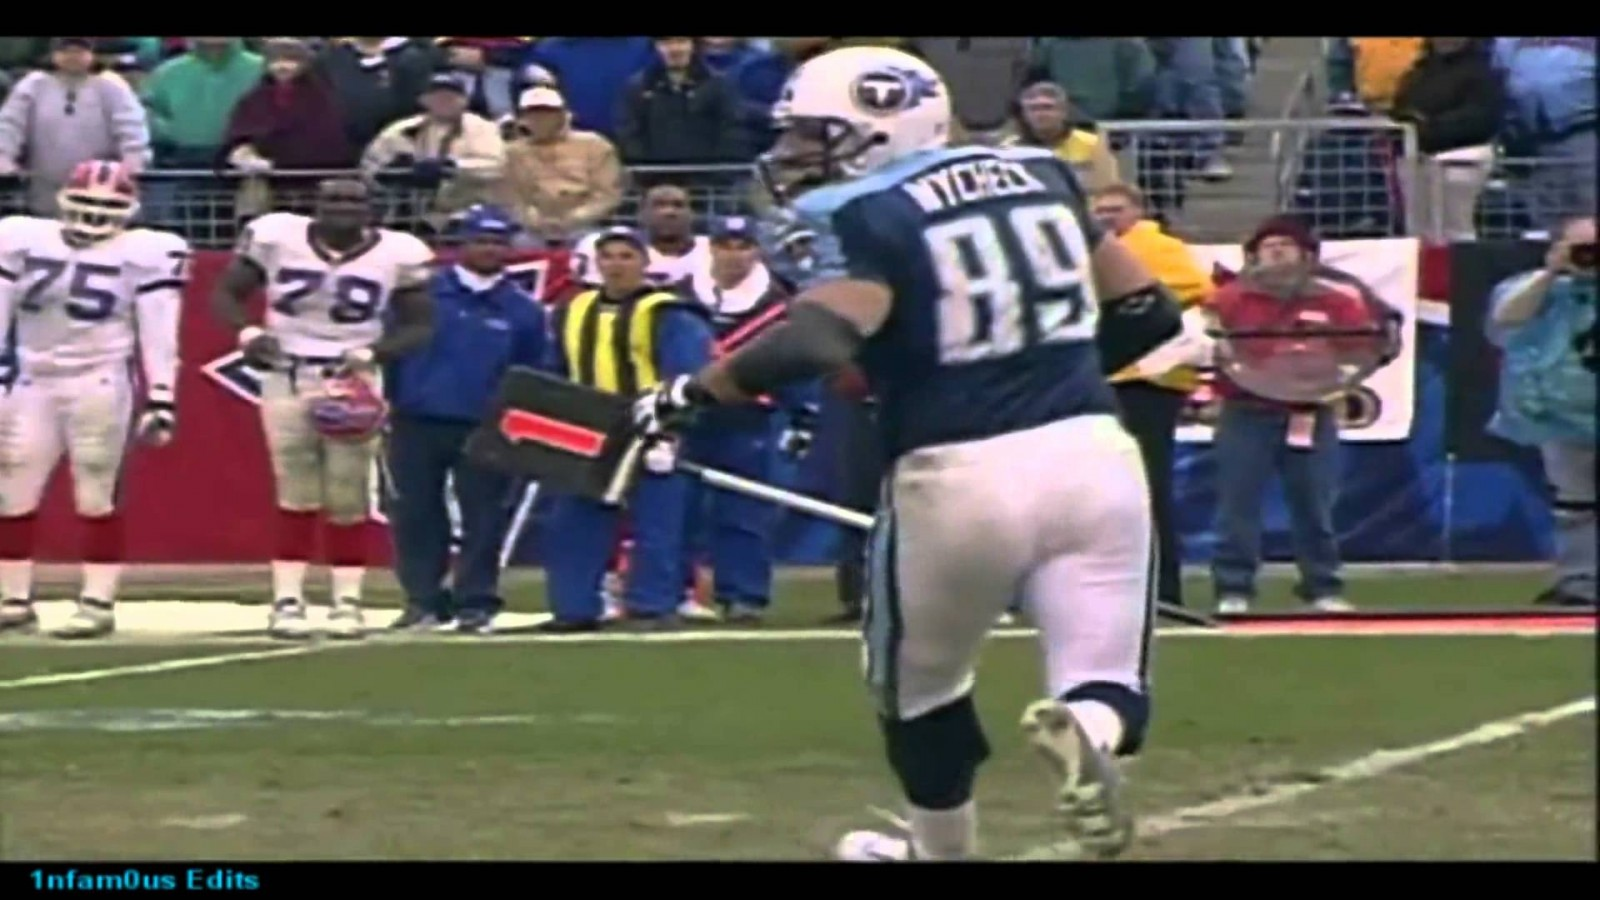 January 8 is the 15 year anniversary of The Music City Miracle [VIDEO]